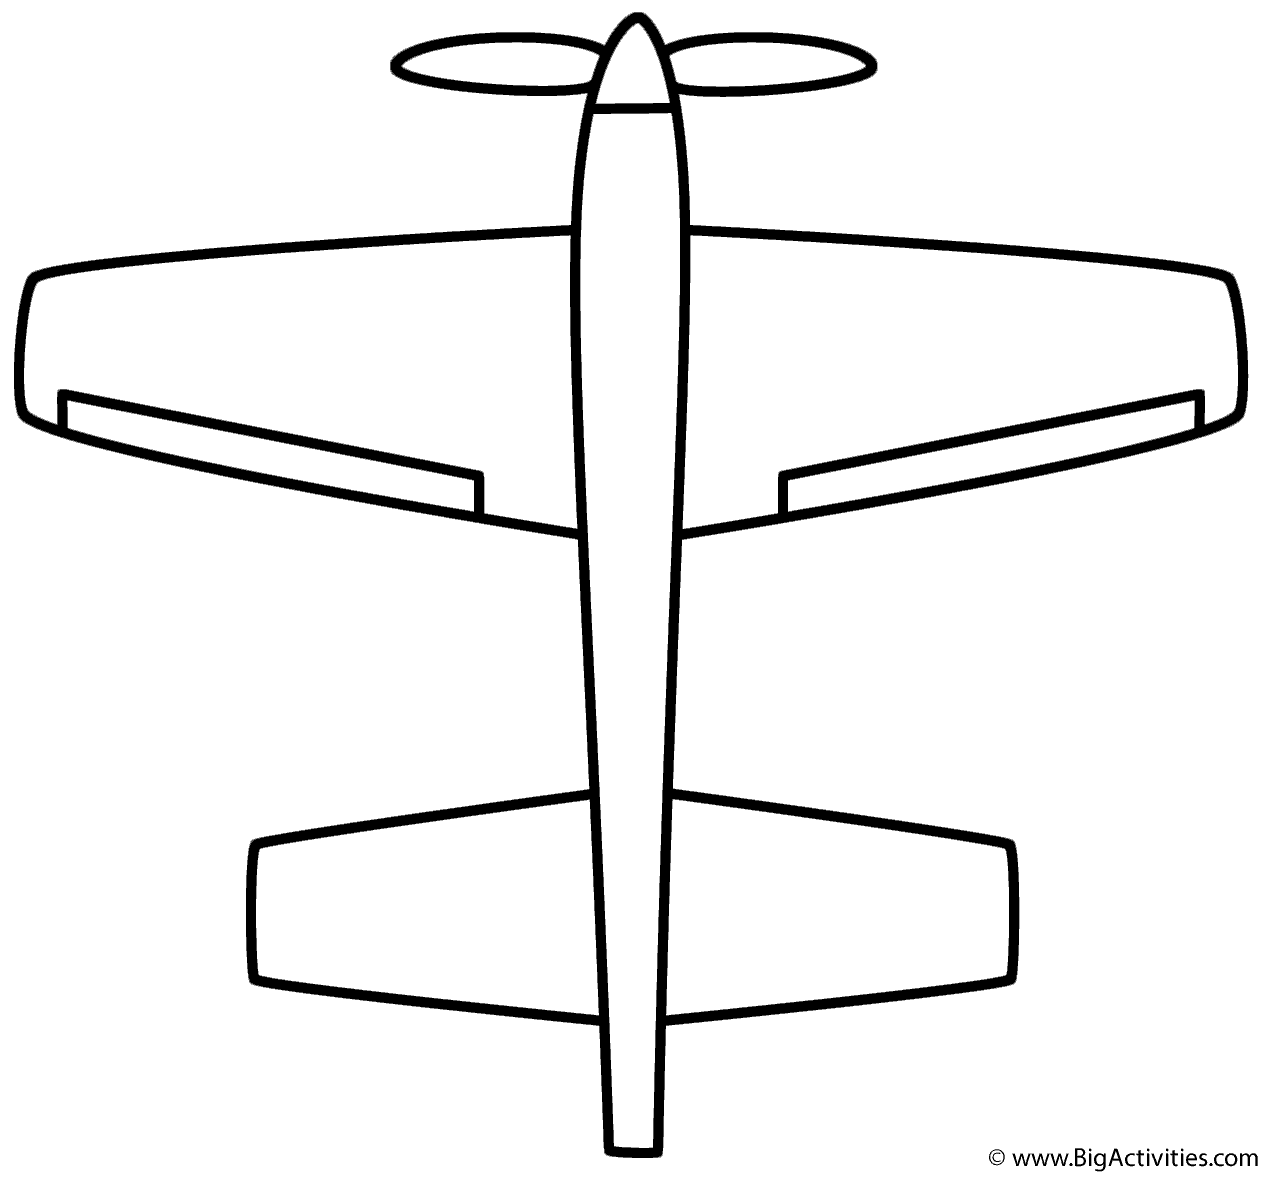 picture of an airplane to color simple airplane coloring page military airplane of to an picture color